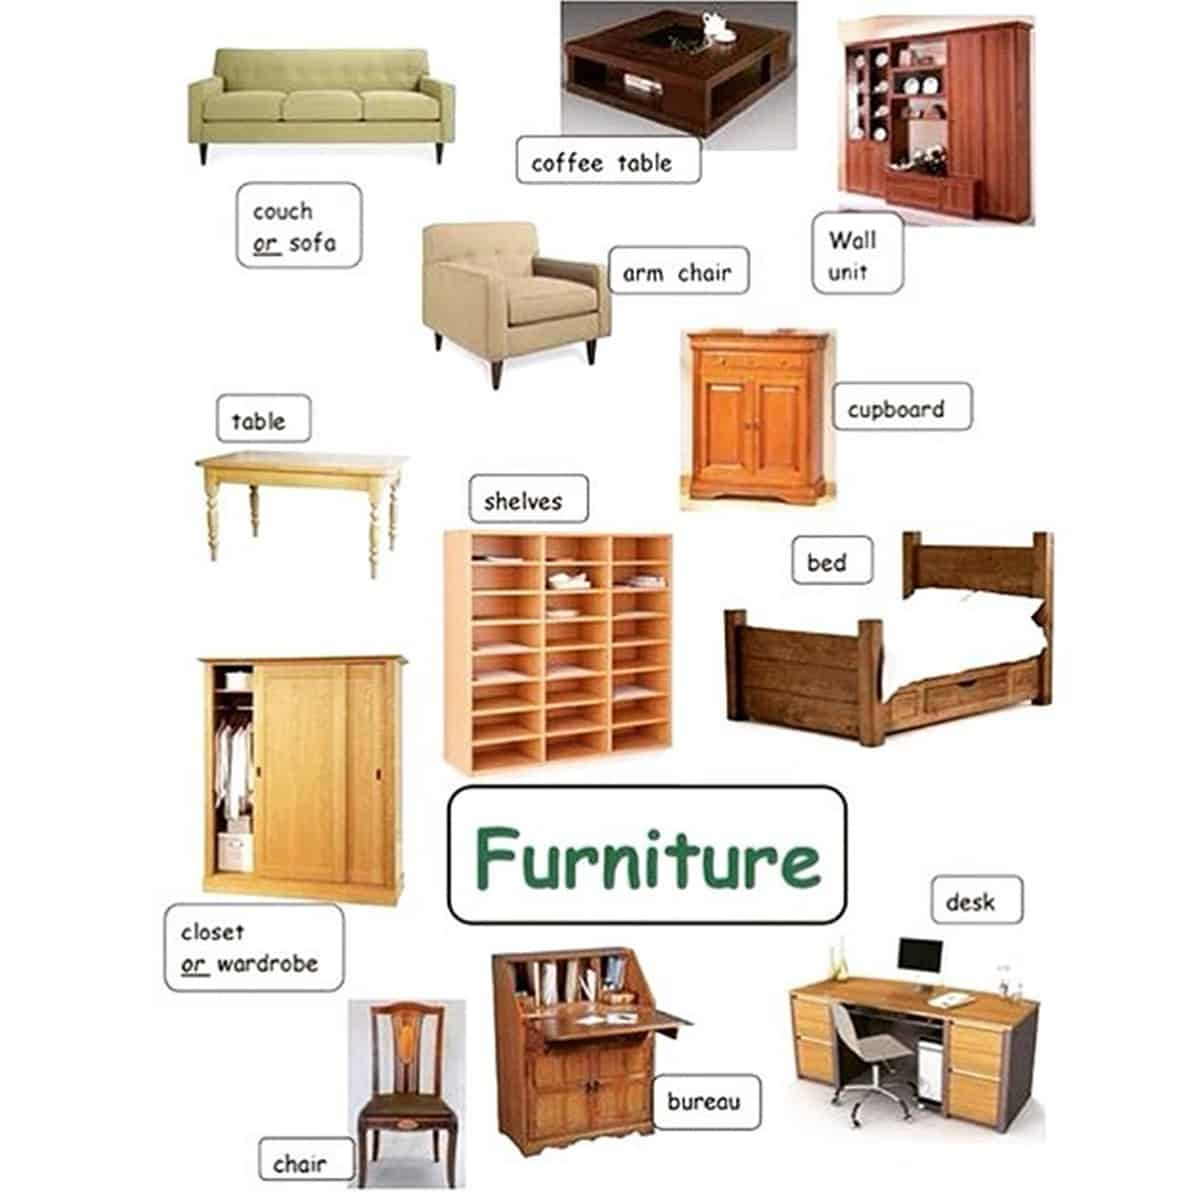 Furniture Vocabulary: 250+ Items Illustrated 6